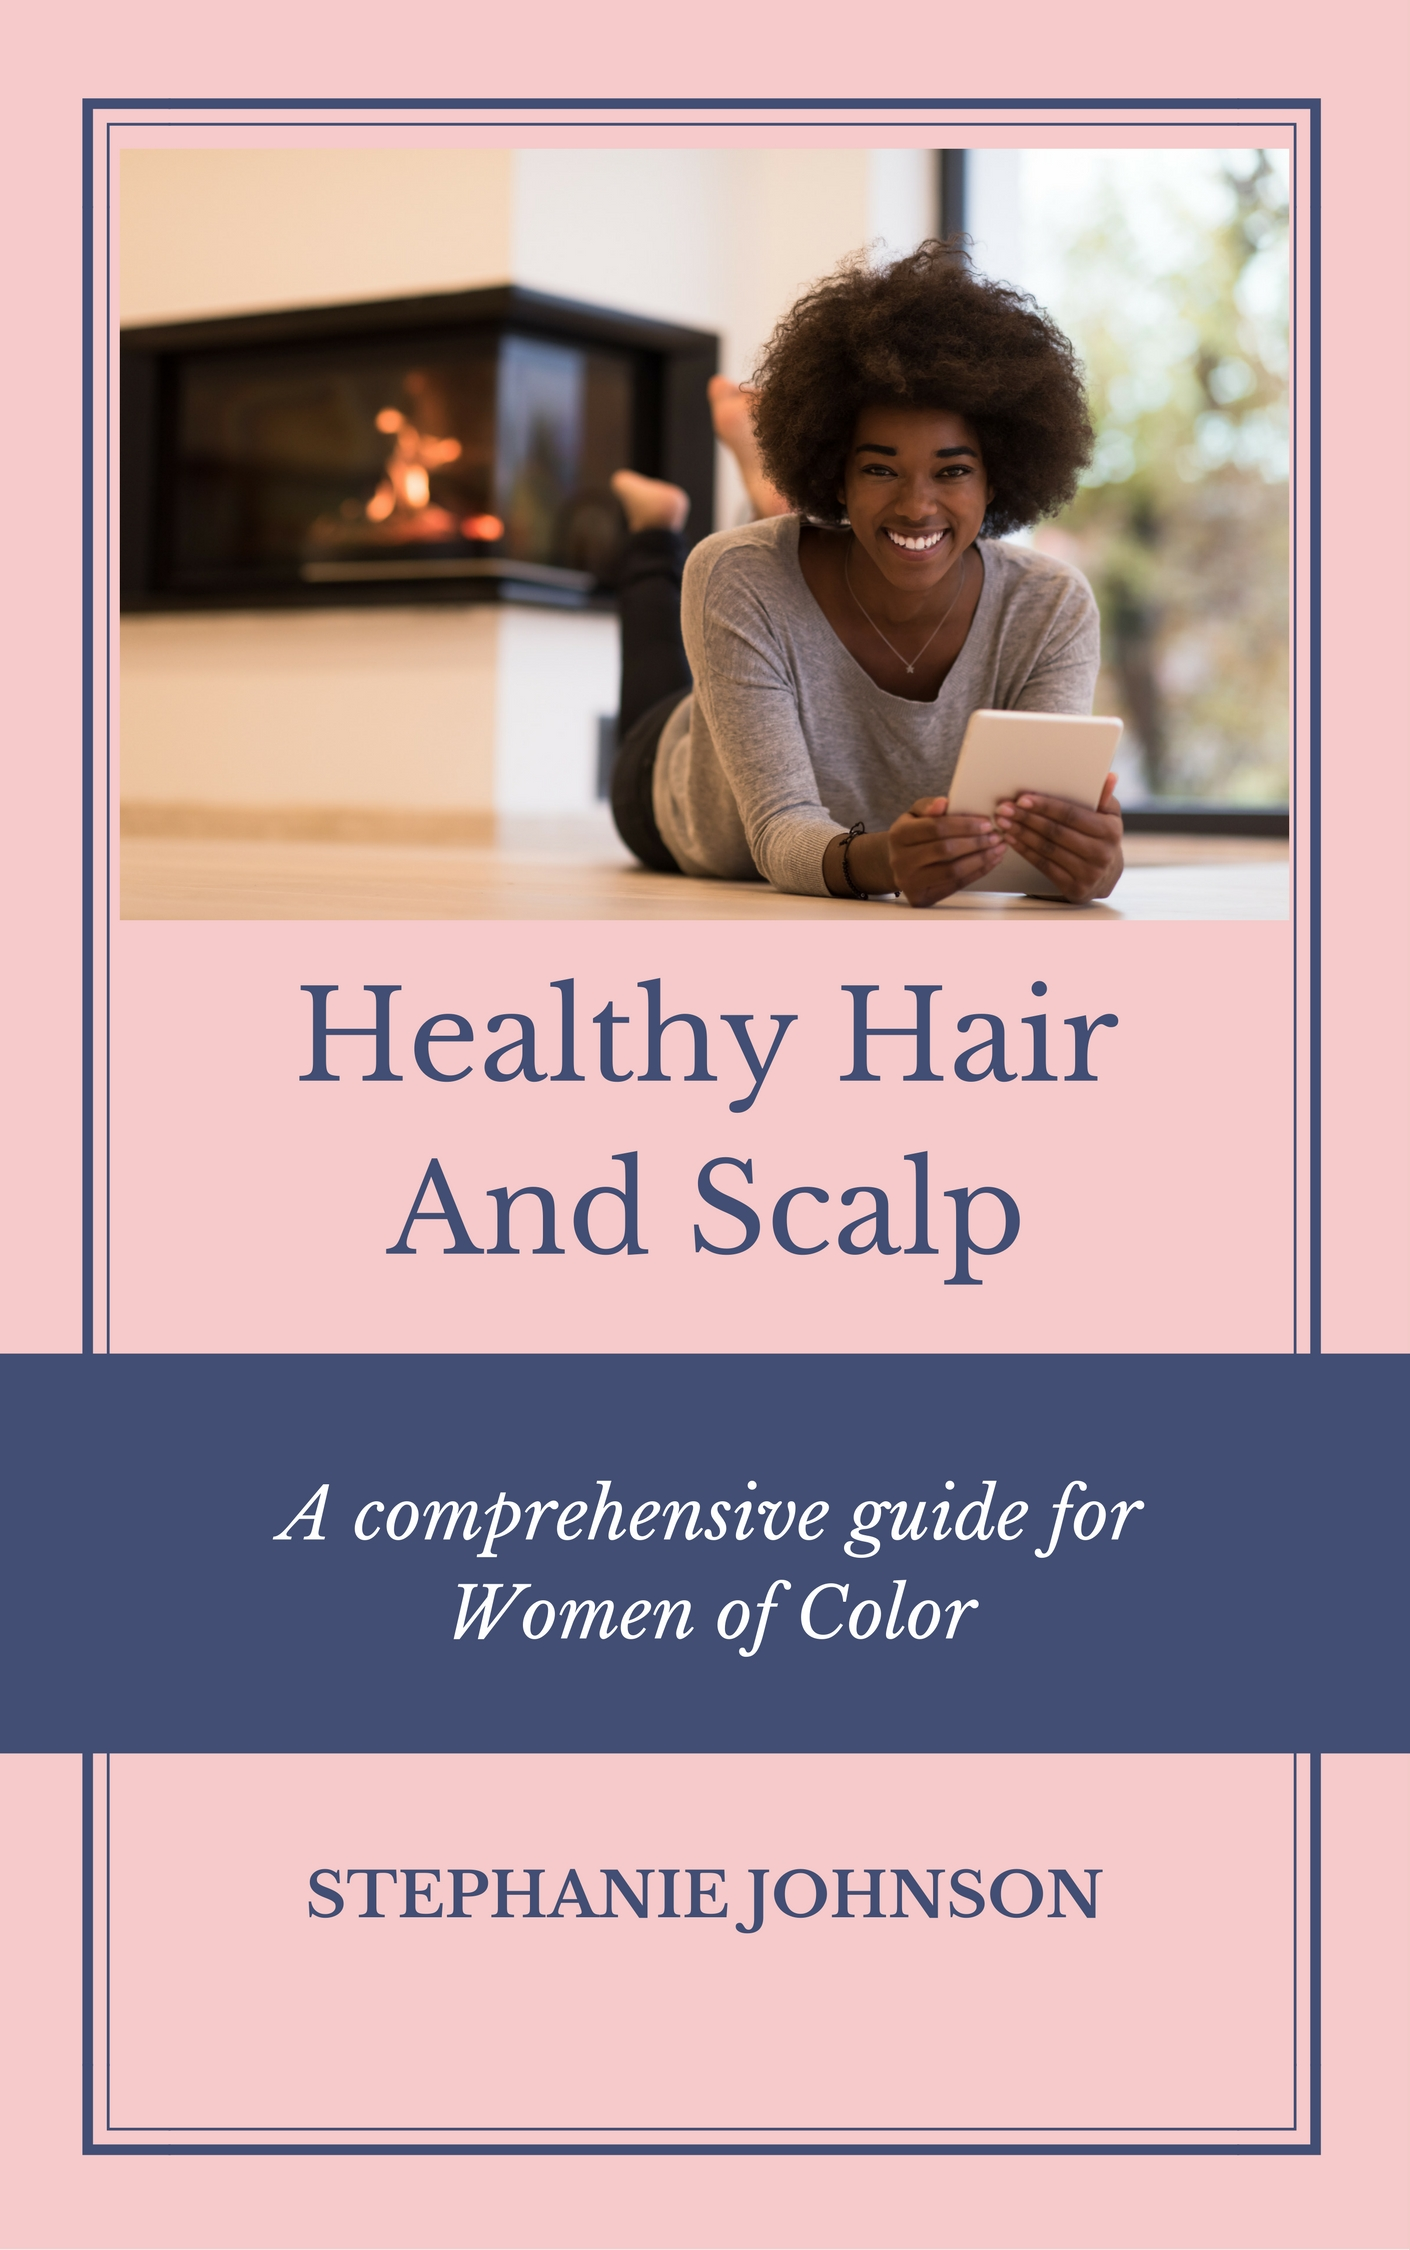 Image Result For The Hair Care Companya